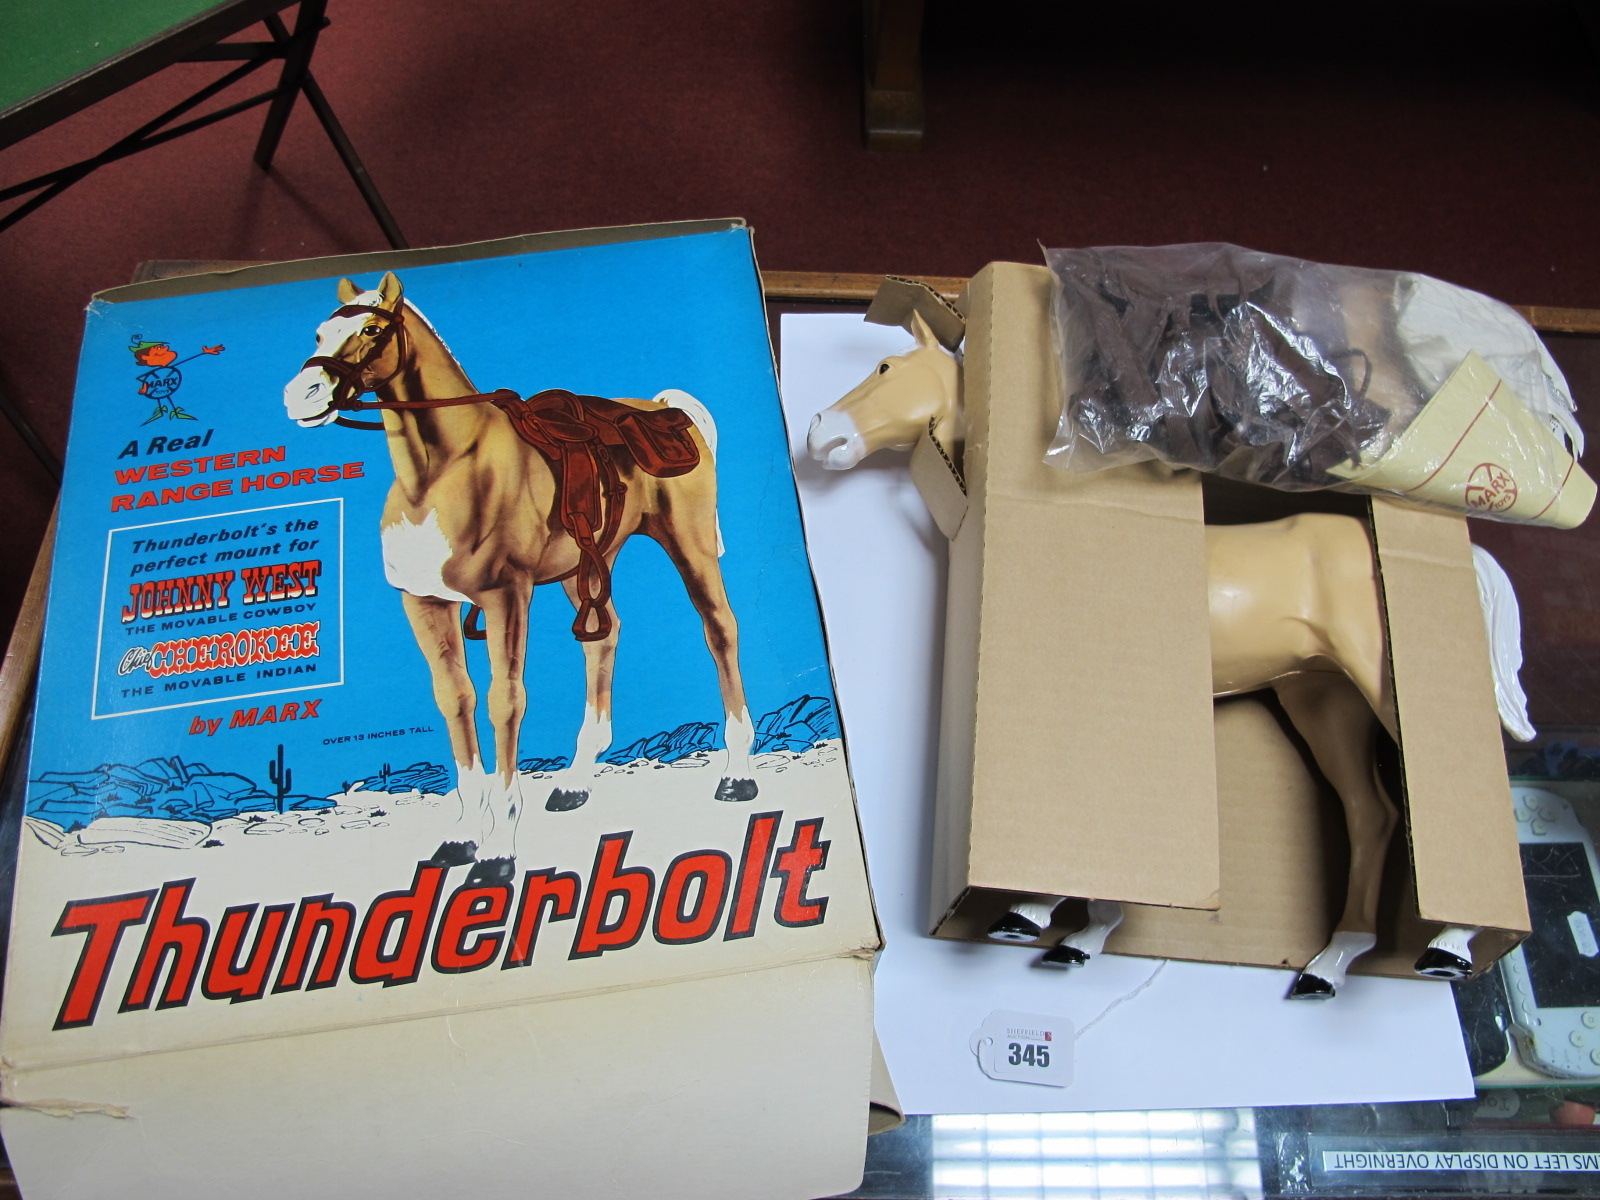 Lot 345 - 'Thunderbolt' Action Figure Horse, by Marx, suitable for Johnny West or Chief Cherokee, appears